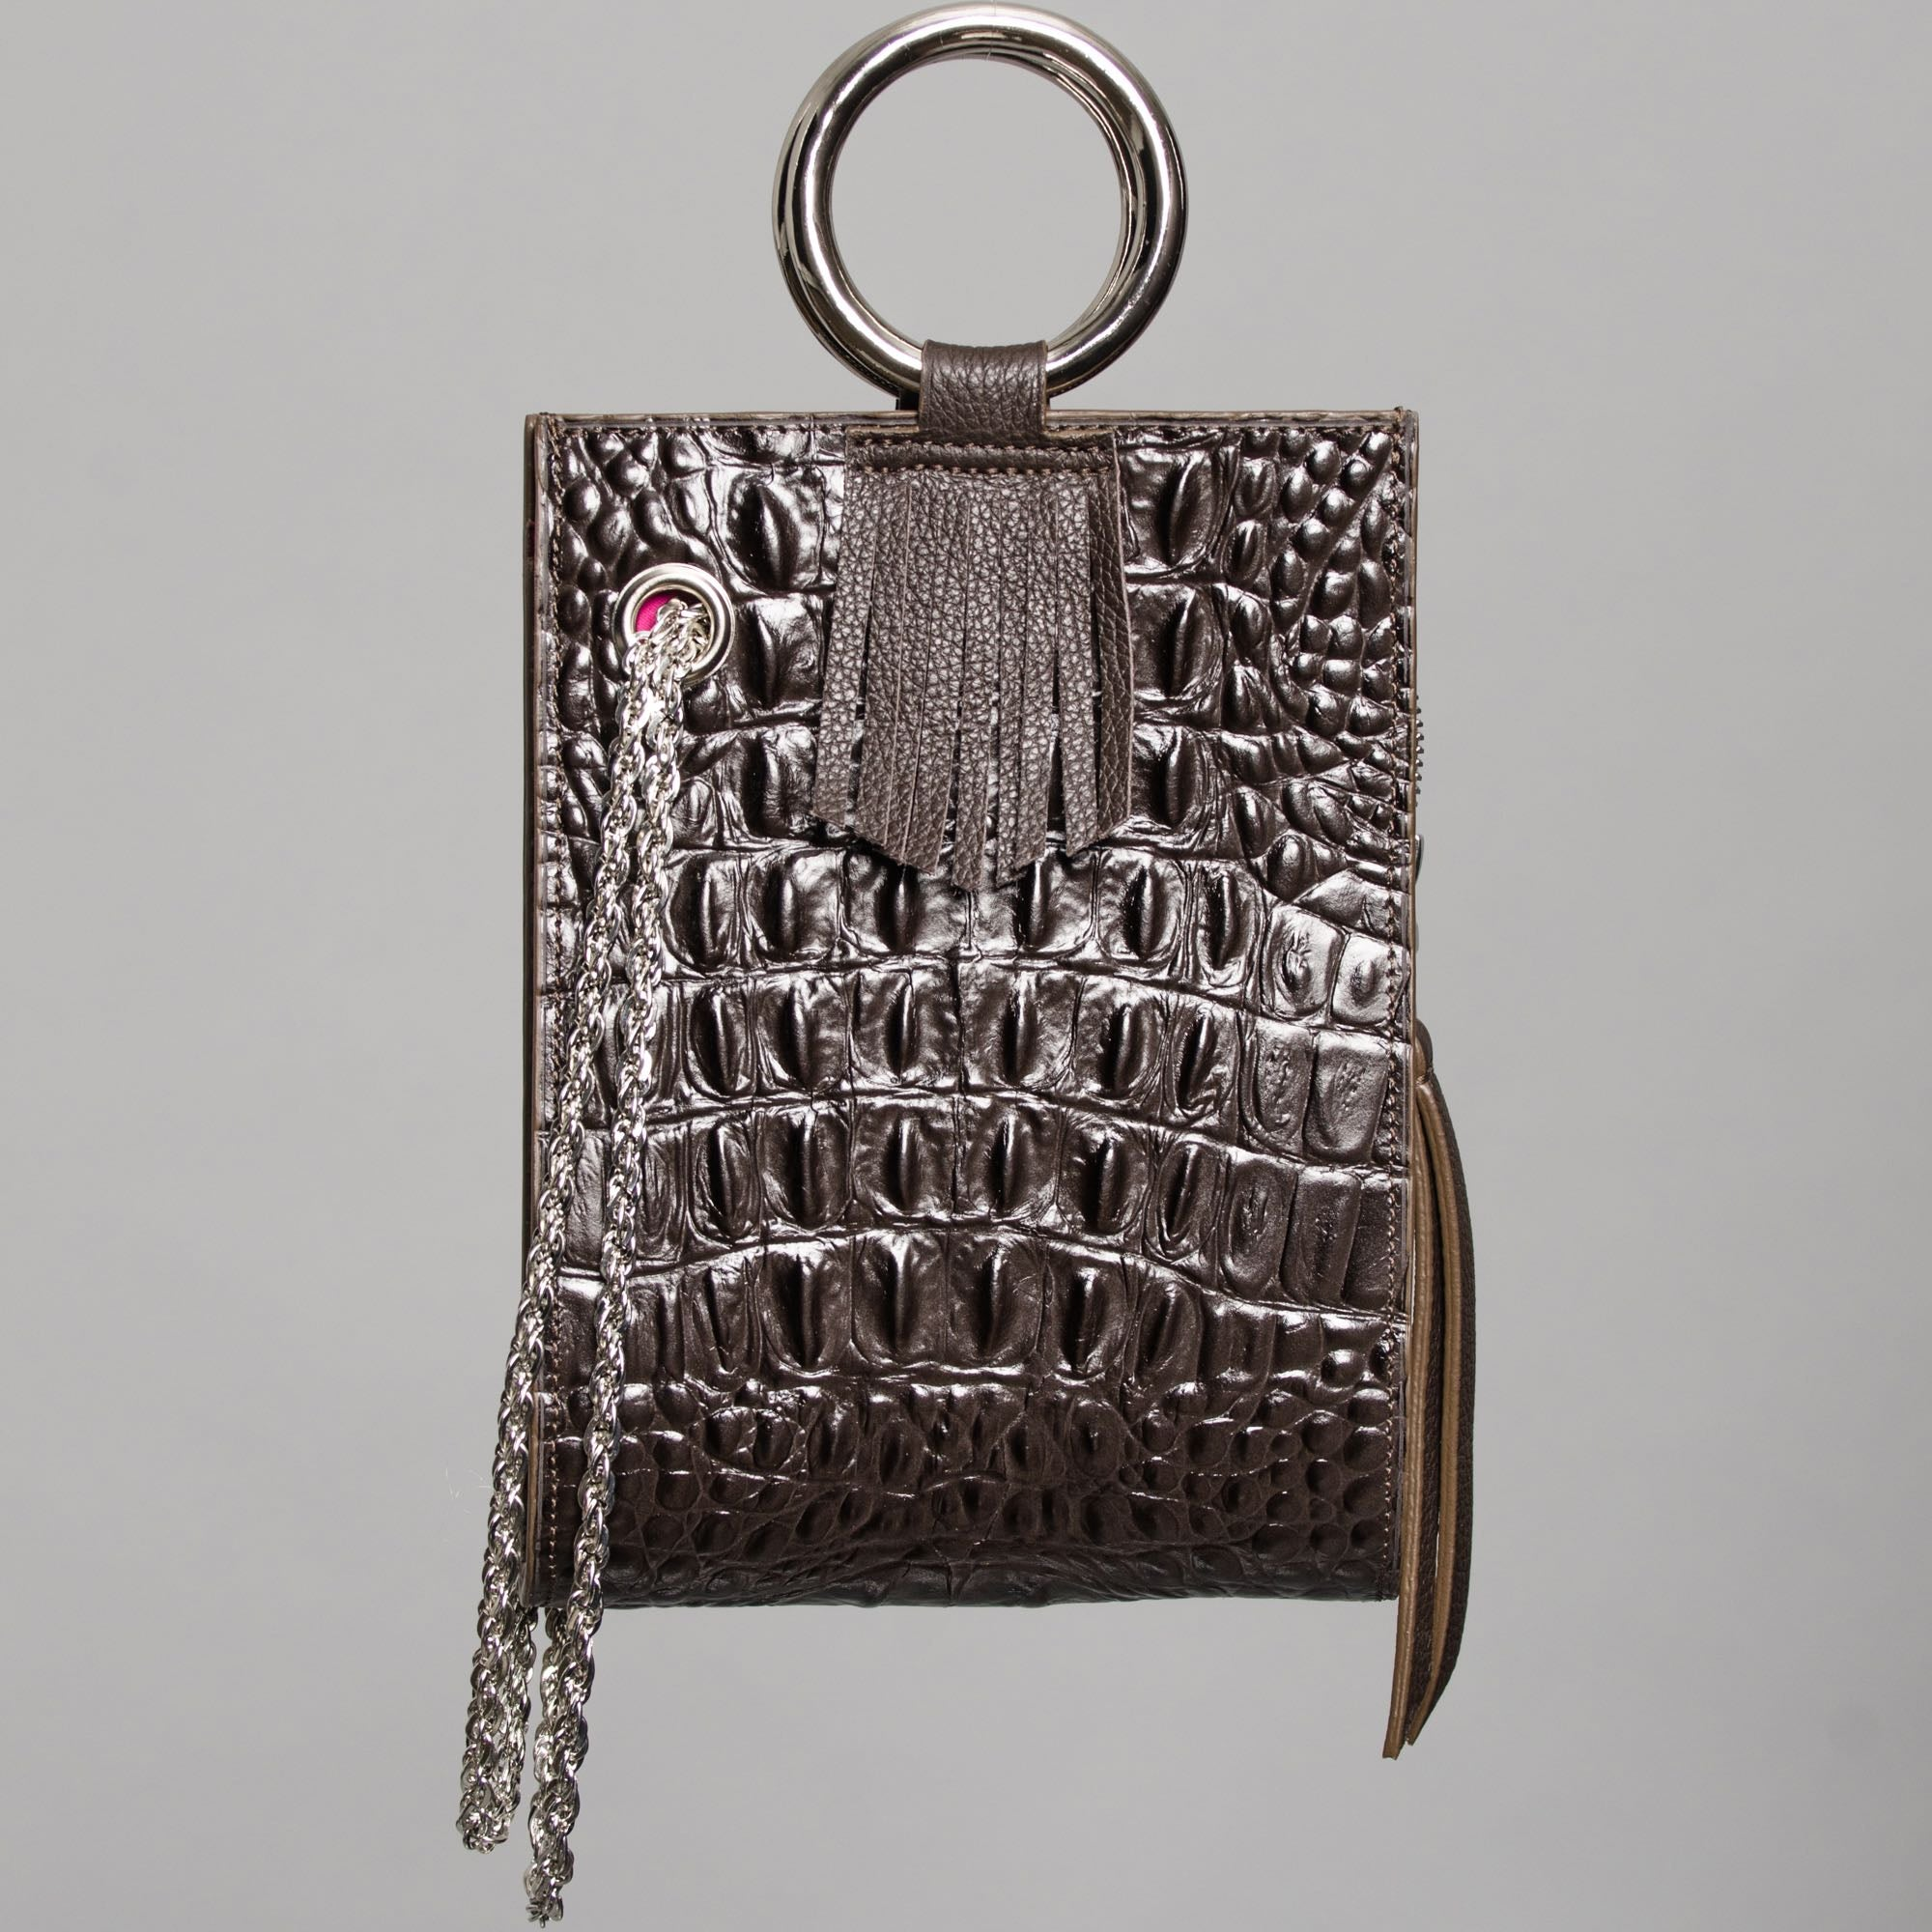 Crocodile Leather Effect mini handbag by Claudette in Montreal